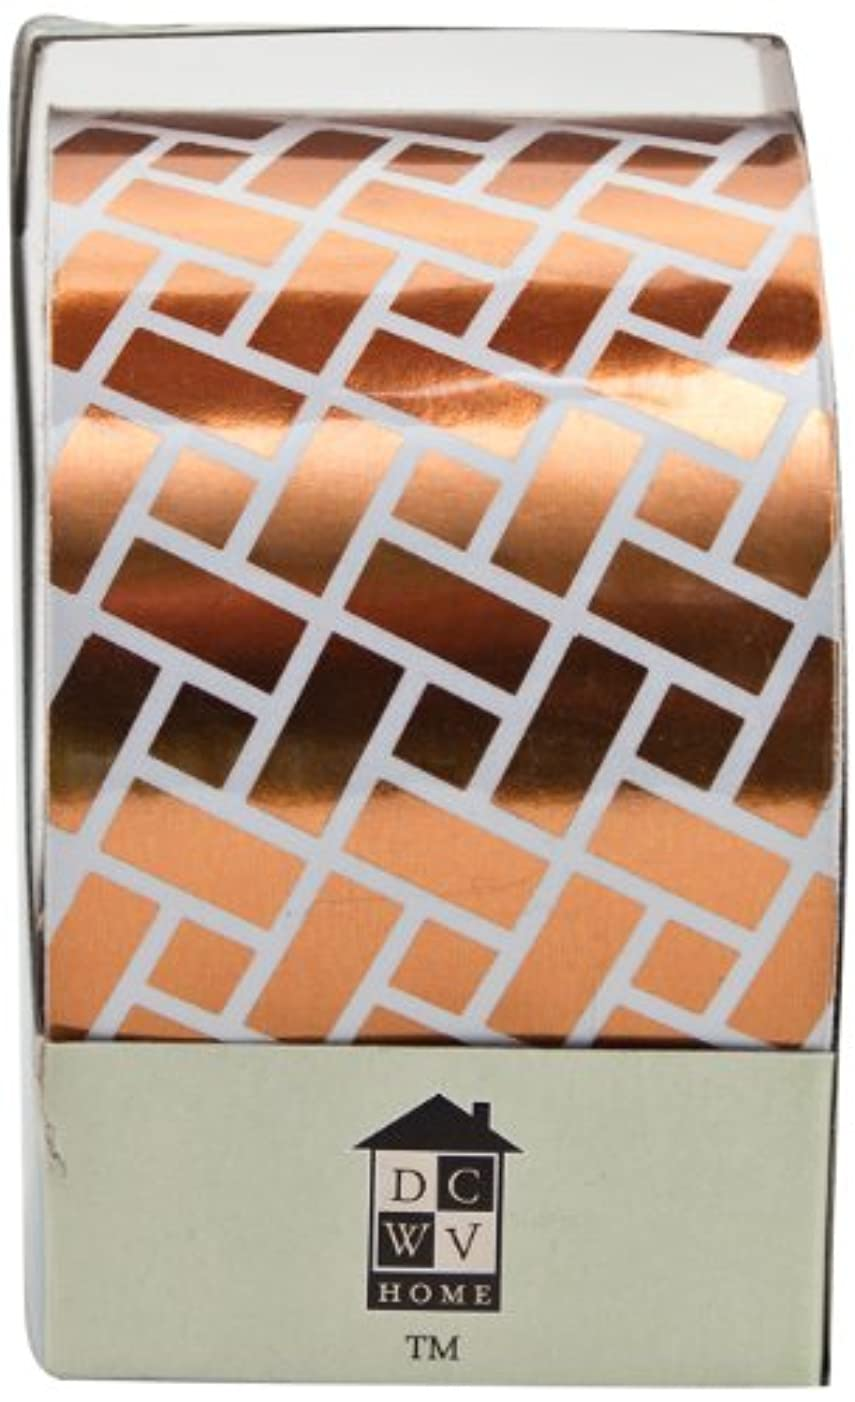 Die Cuts With A View Home Craft Trim 2 Natural Brick Pattern, CPR, 157-inches by 2-inches Foil Roll